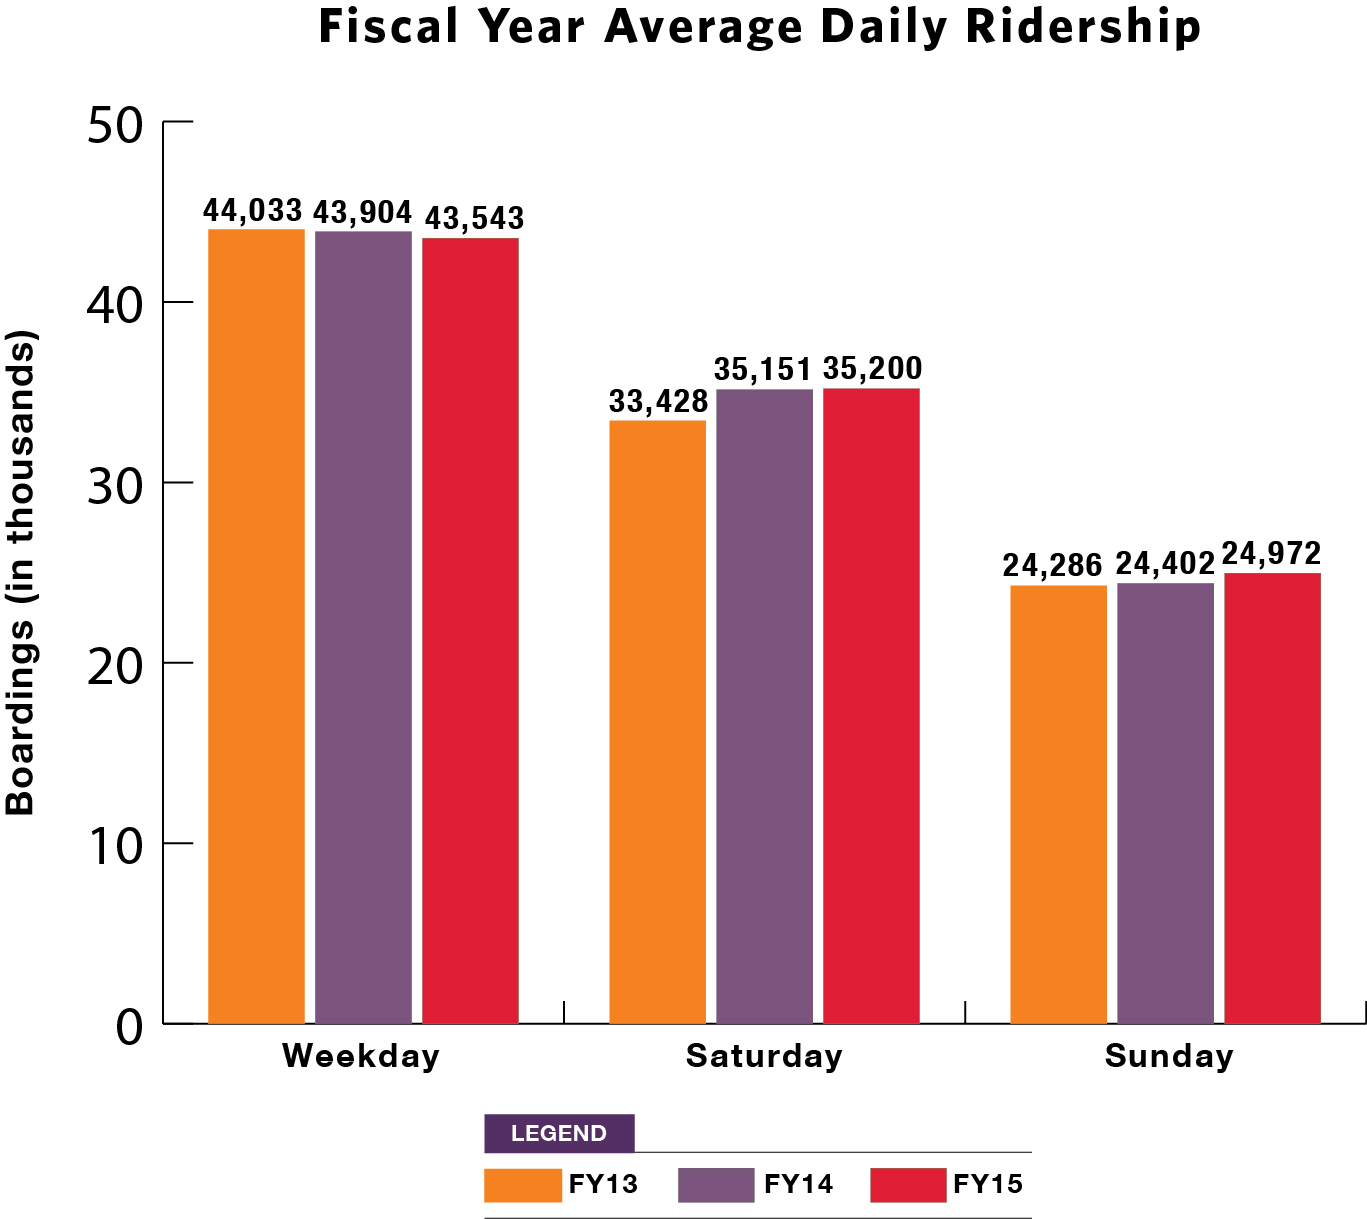 Average Daily Ridership for 2012 to 2014